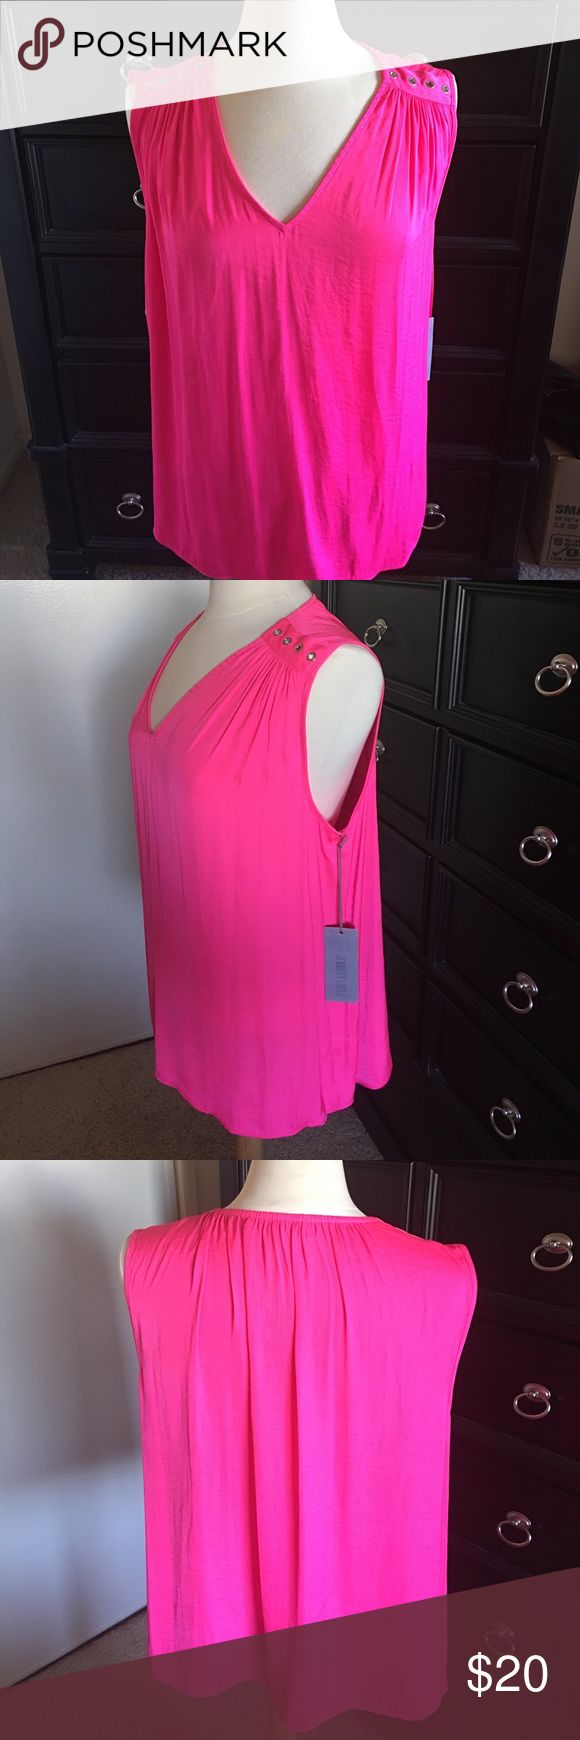 🌸🌸NWT Beautiful Jennifer Lopez top🌸🌸 This is new with tags! This is a beautiful bright pink in color & Never worn. Bought and then never got to wear due to recent weight loss! My loss is your gain! 🎉🎉I offer discounts on bundles and will accept reasonable offers. I have a lot to list so please feel free to make offers! Please 🚫low balling and 🚫trades! 🚫offers on items $10 or less due to PM fees. These Items Will only be discounted if bundled. Sorry ☹️Thank you for stopping by and…